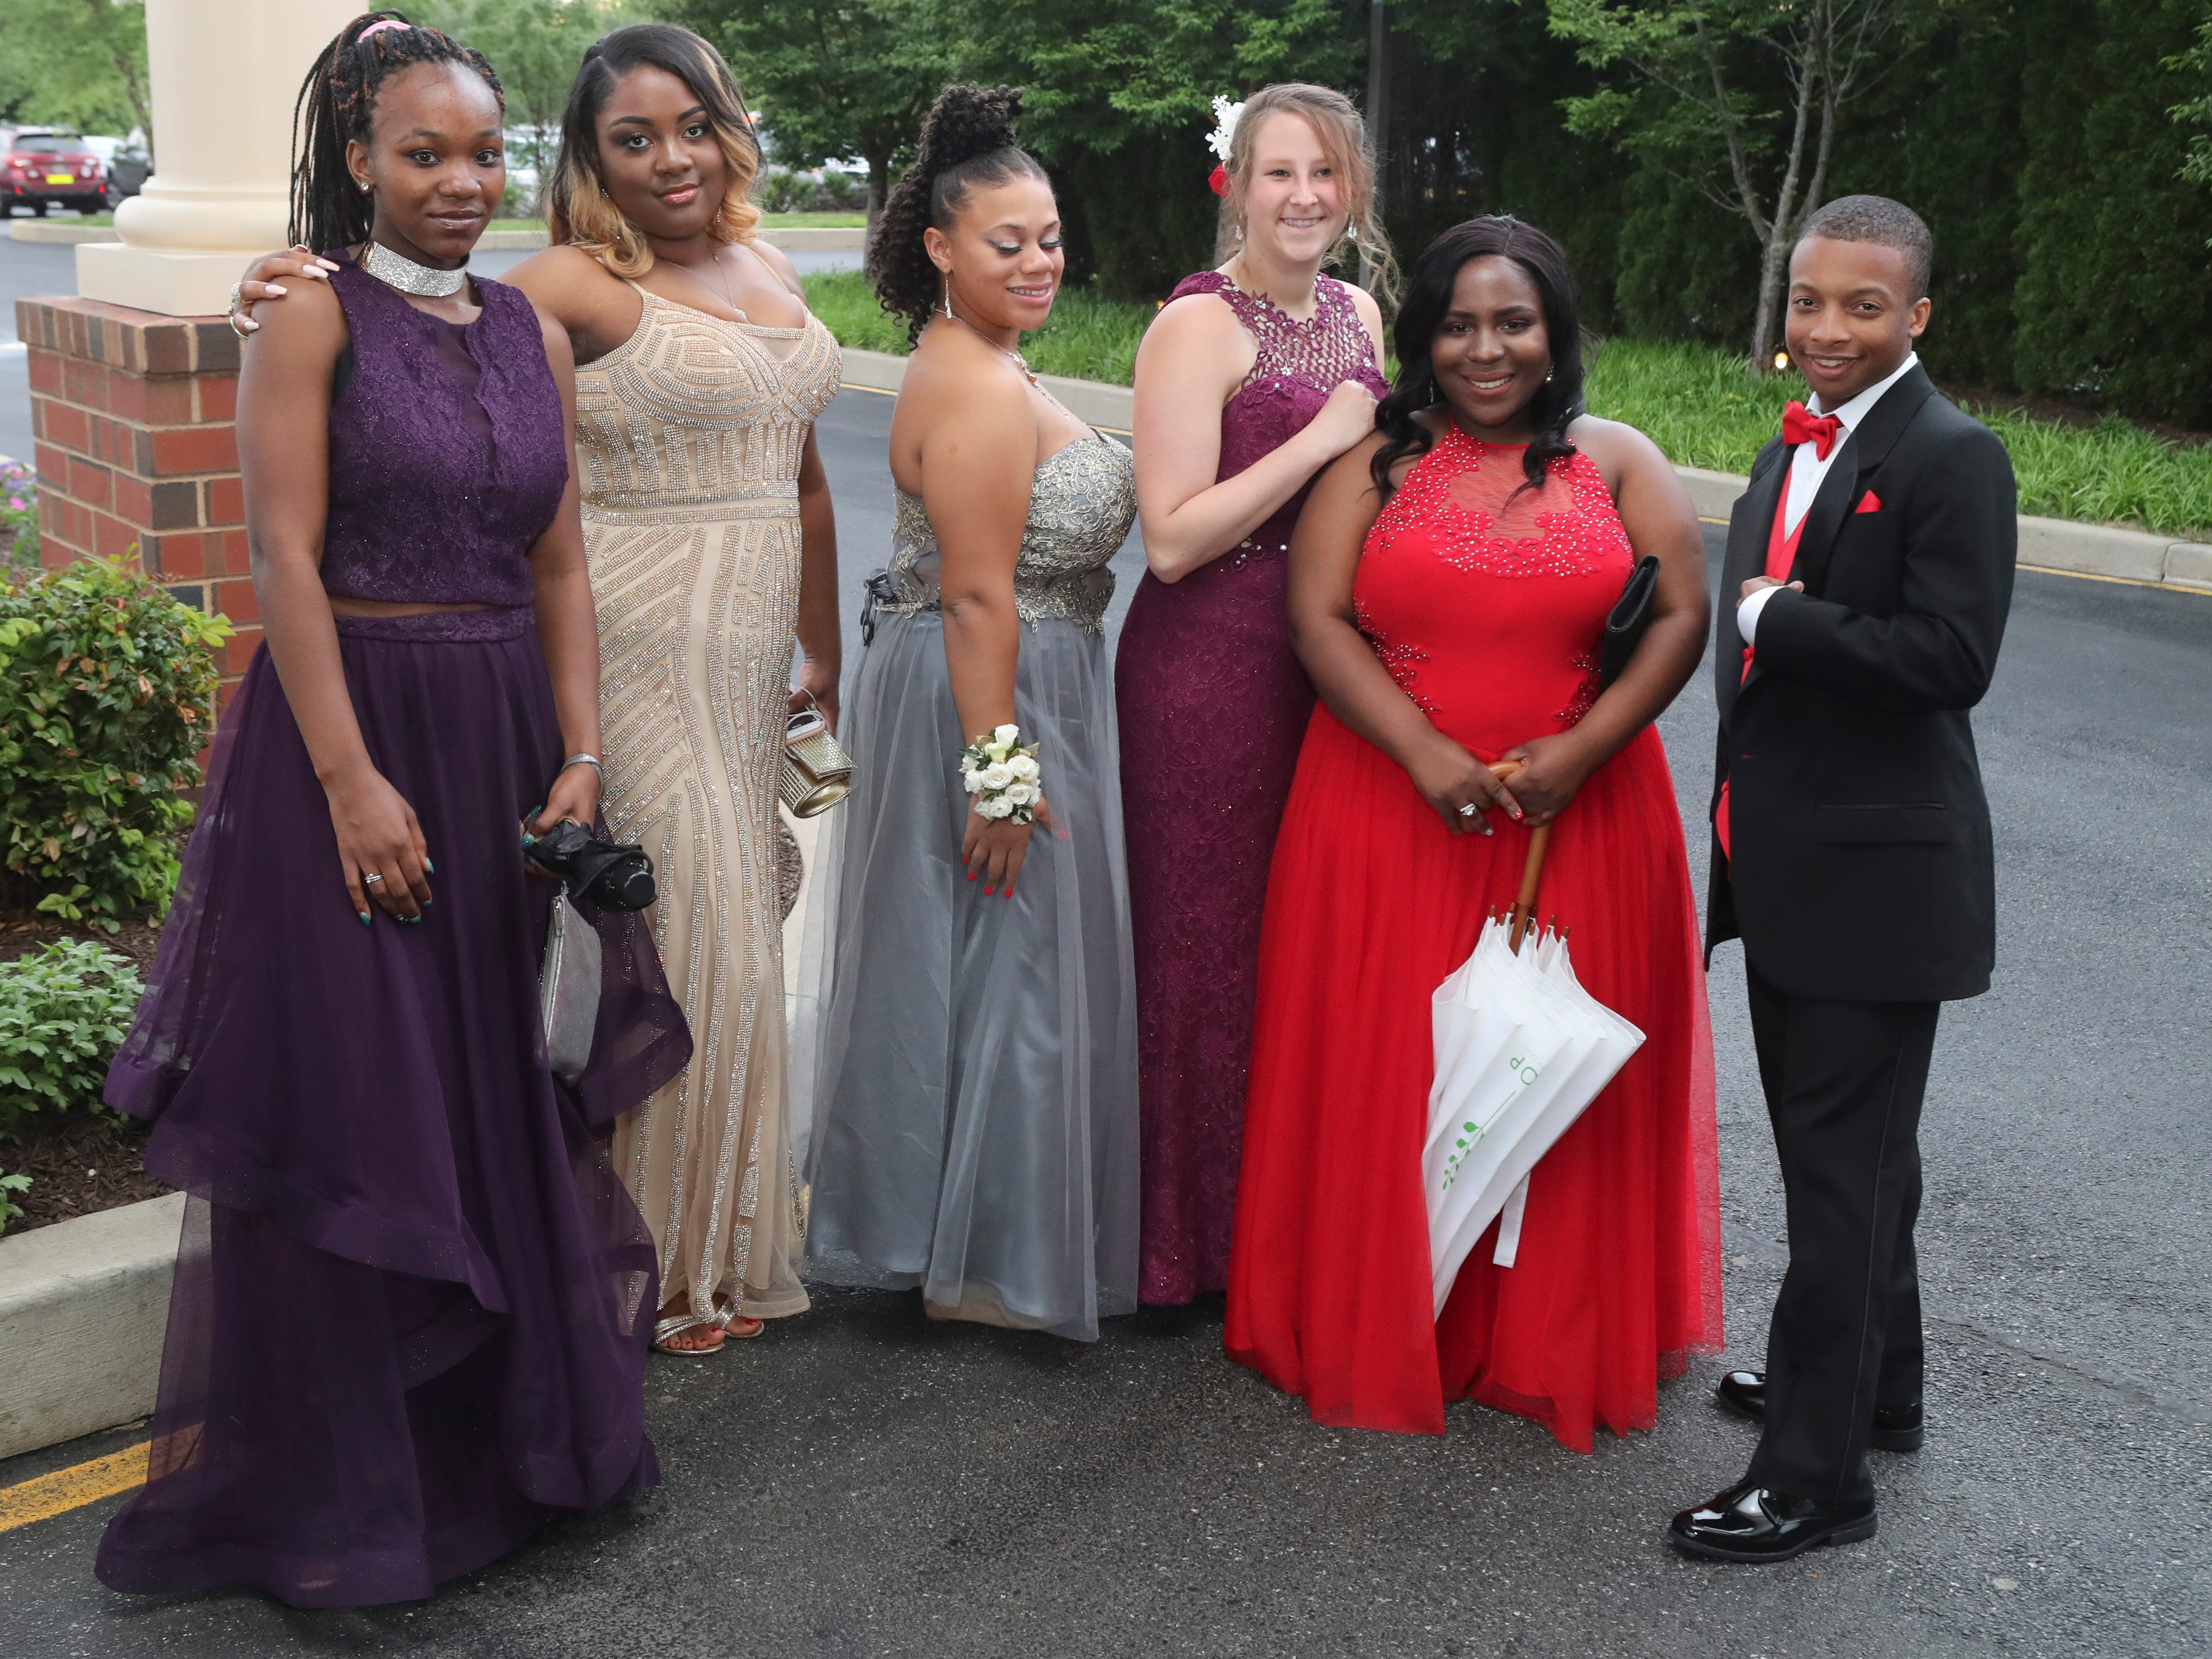 McKean High School students and guests arrive at the Executive Banquet & Conference Center in Glasgow for the school's prom, Friday, May 10, 2019.